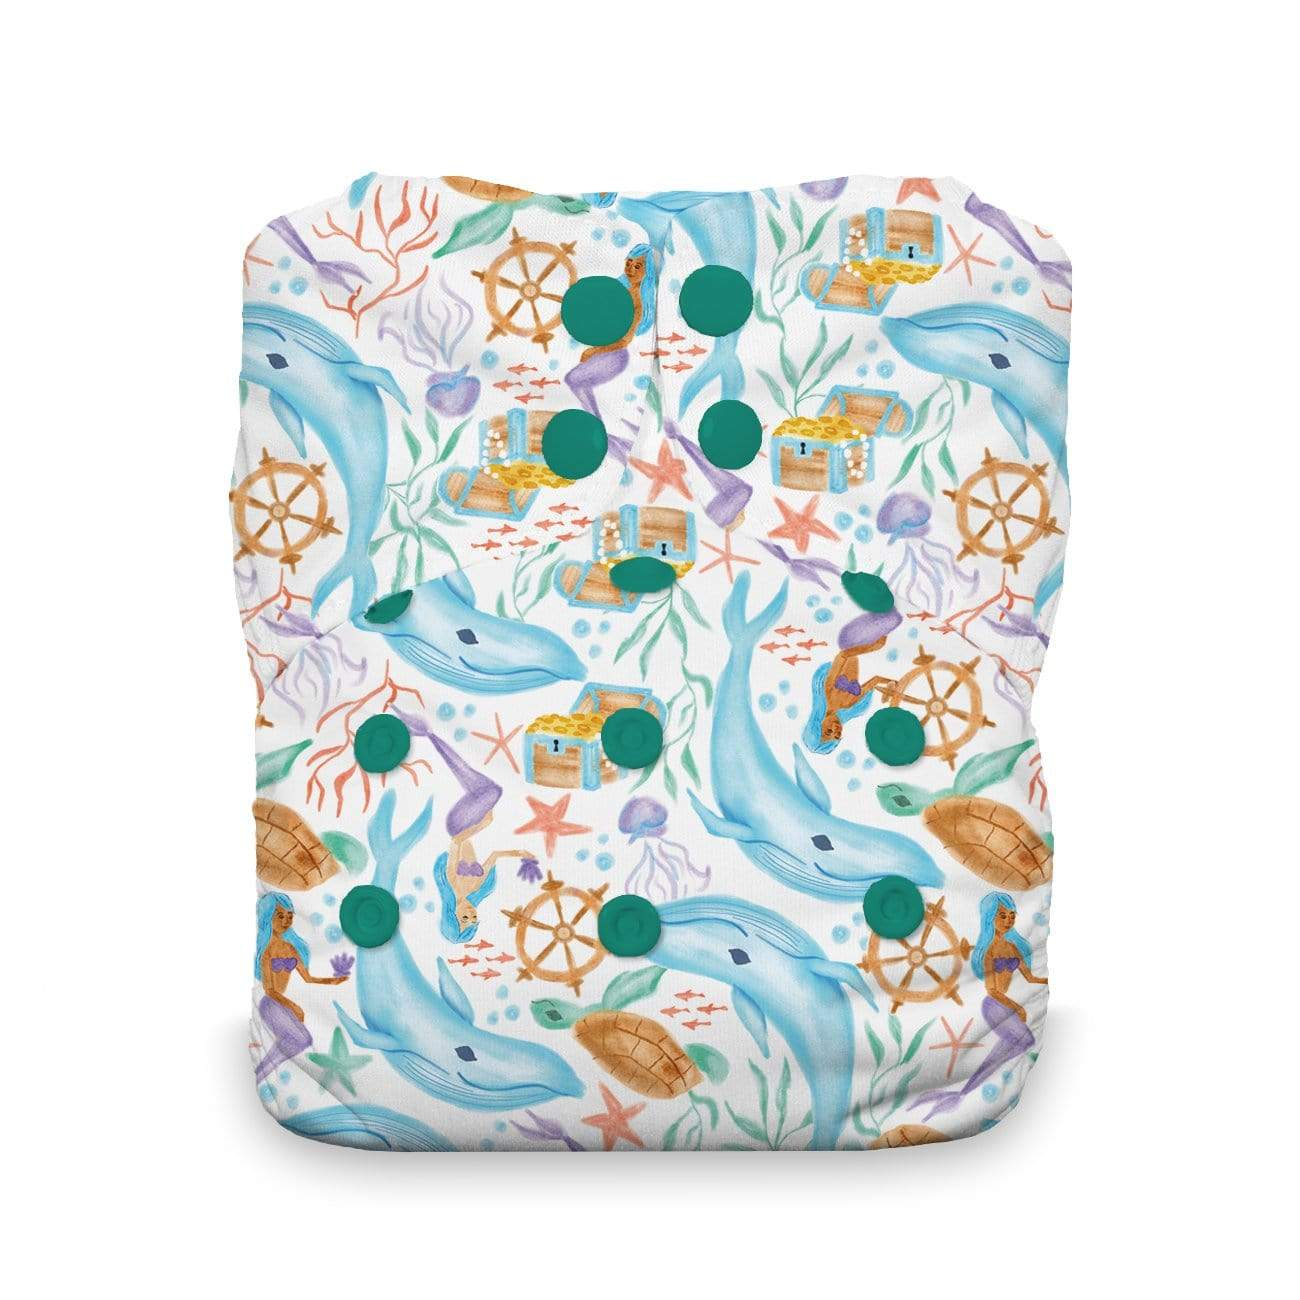 Thirsties One Size Snap All In One Diaper - Mermaid Lagoon